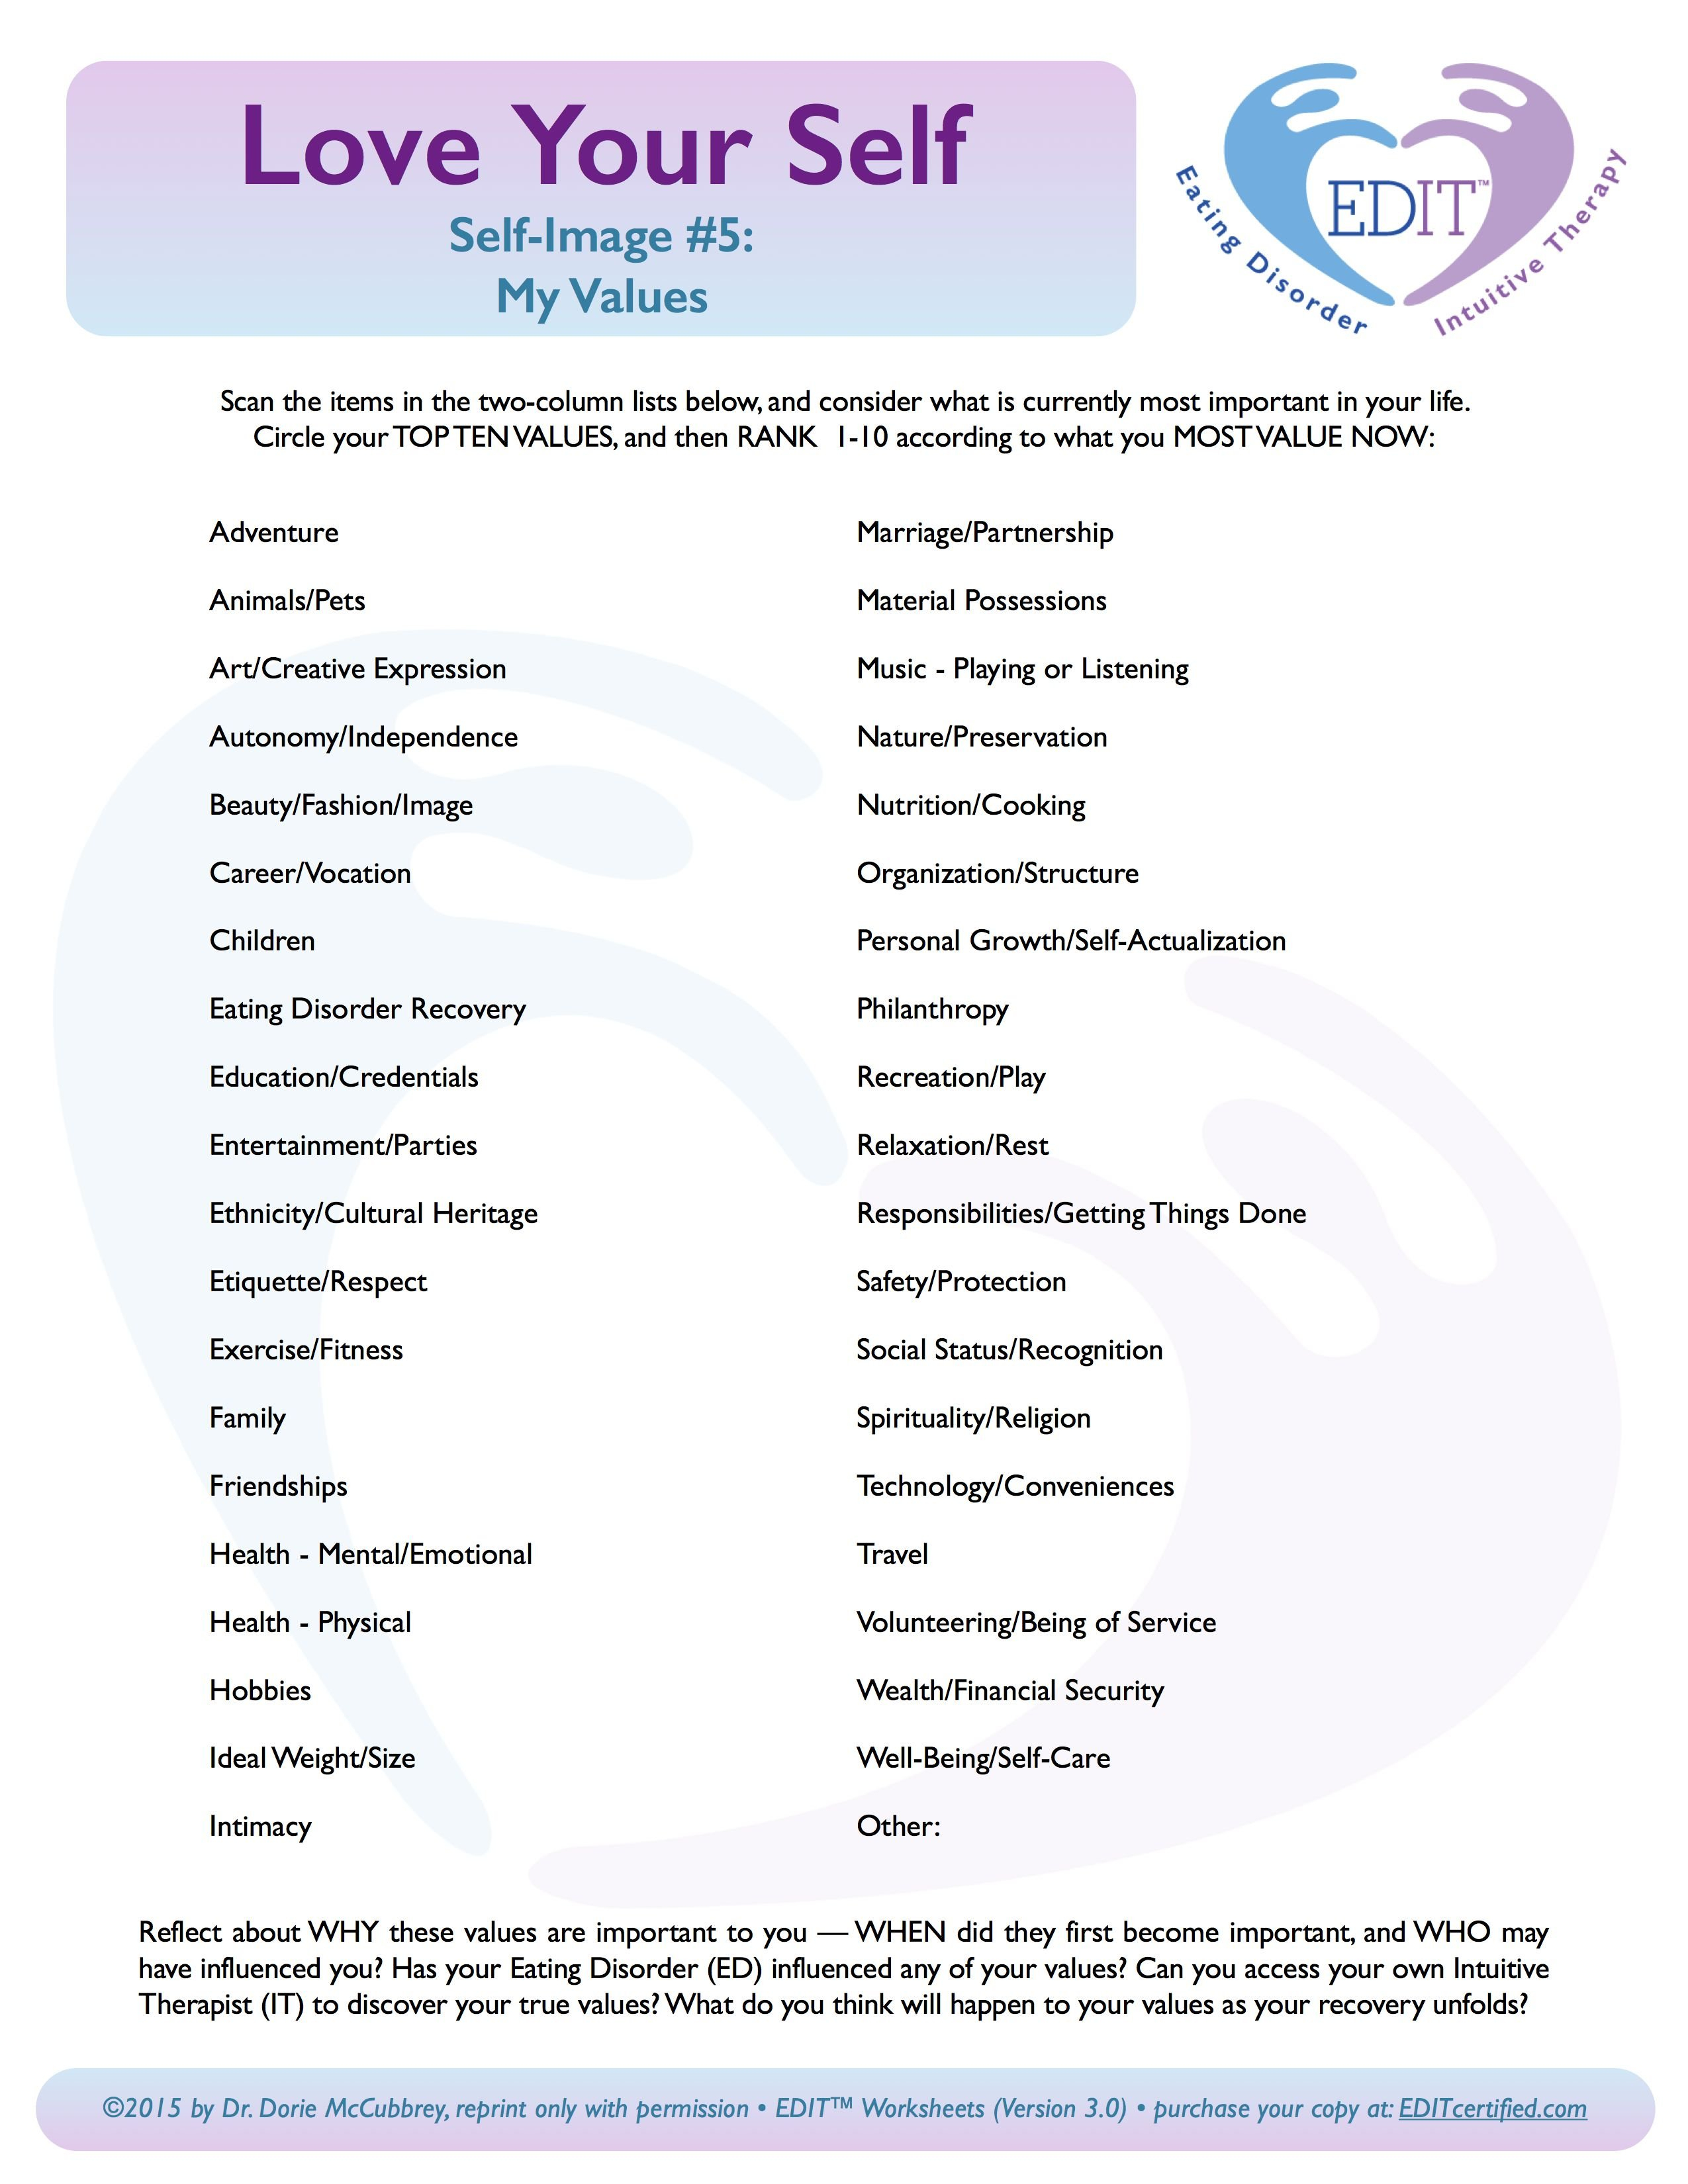 Values Clarification In Eating Disorder Recovery  Dr Dorie As Well As Eating Disorder Treatment Worksheets